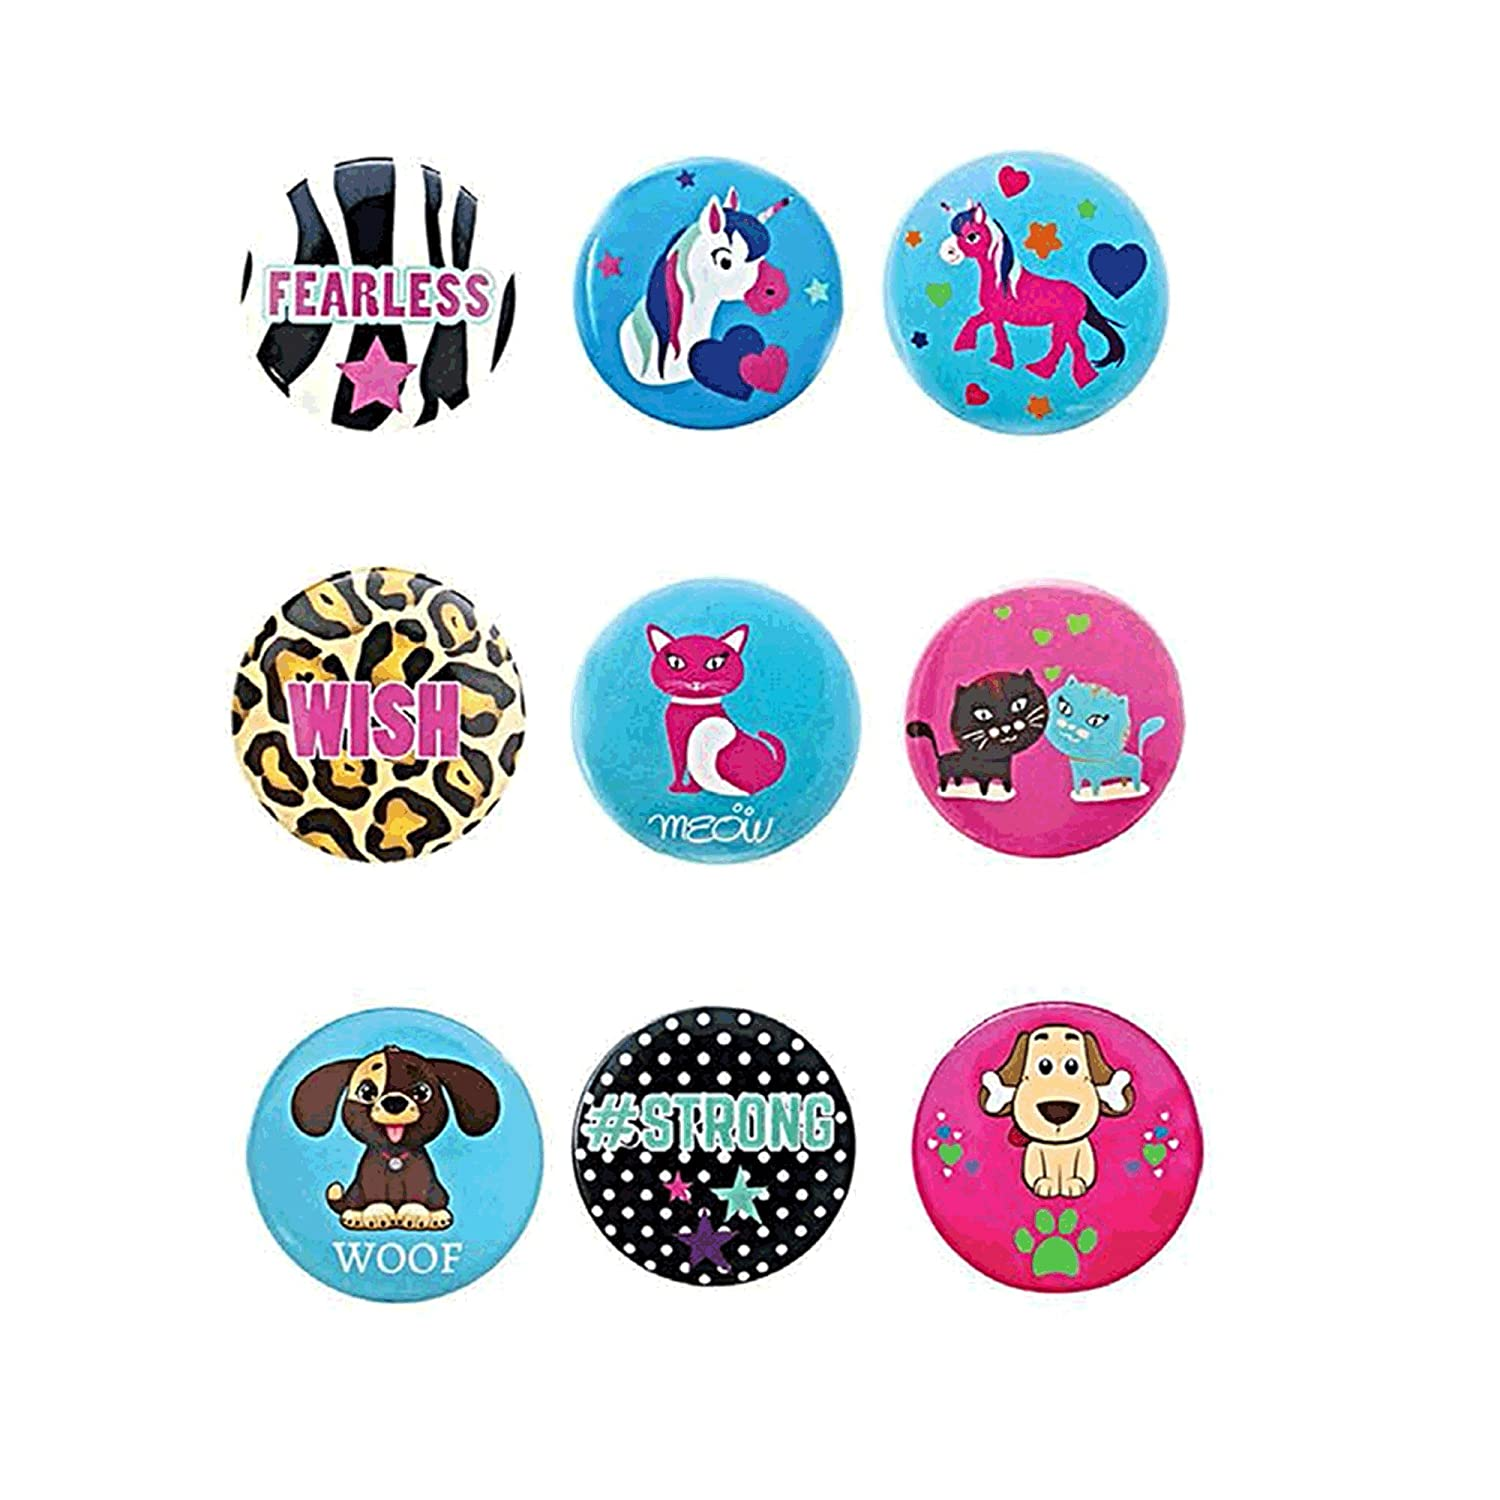 Button Pins 9 Piece Pack Assorted Designs Great Party Favors Pins for Girls Women Teens Tween Fun Accessories by Frogsac USA